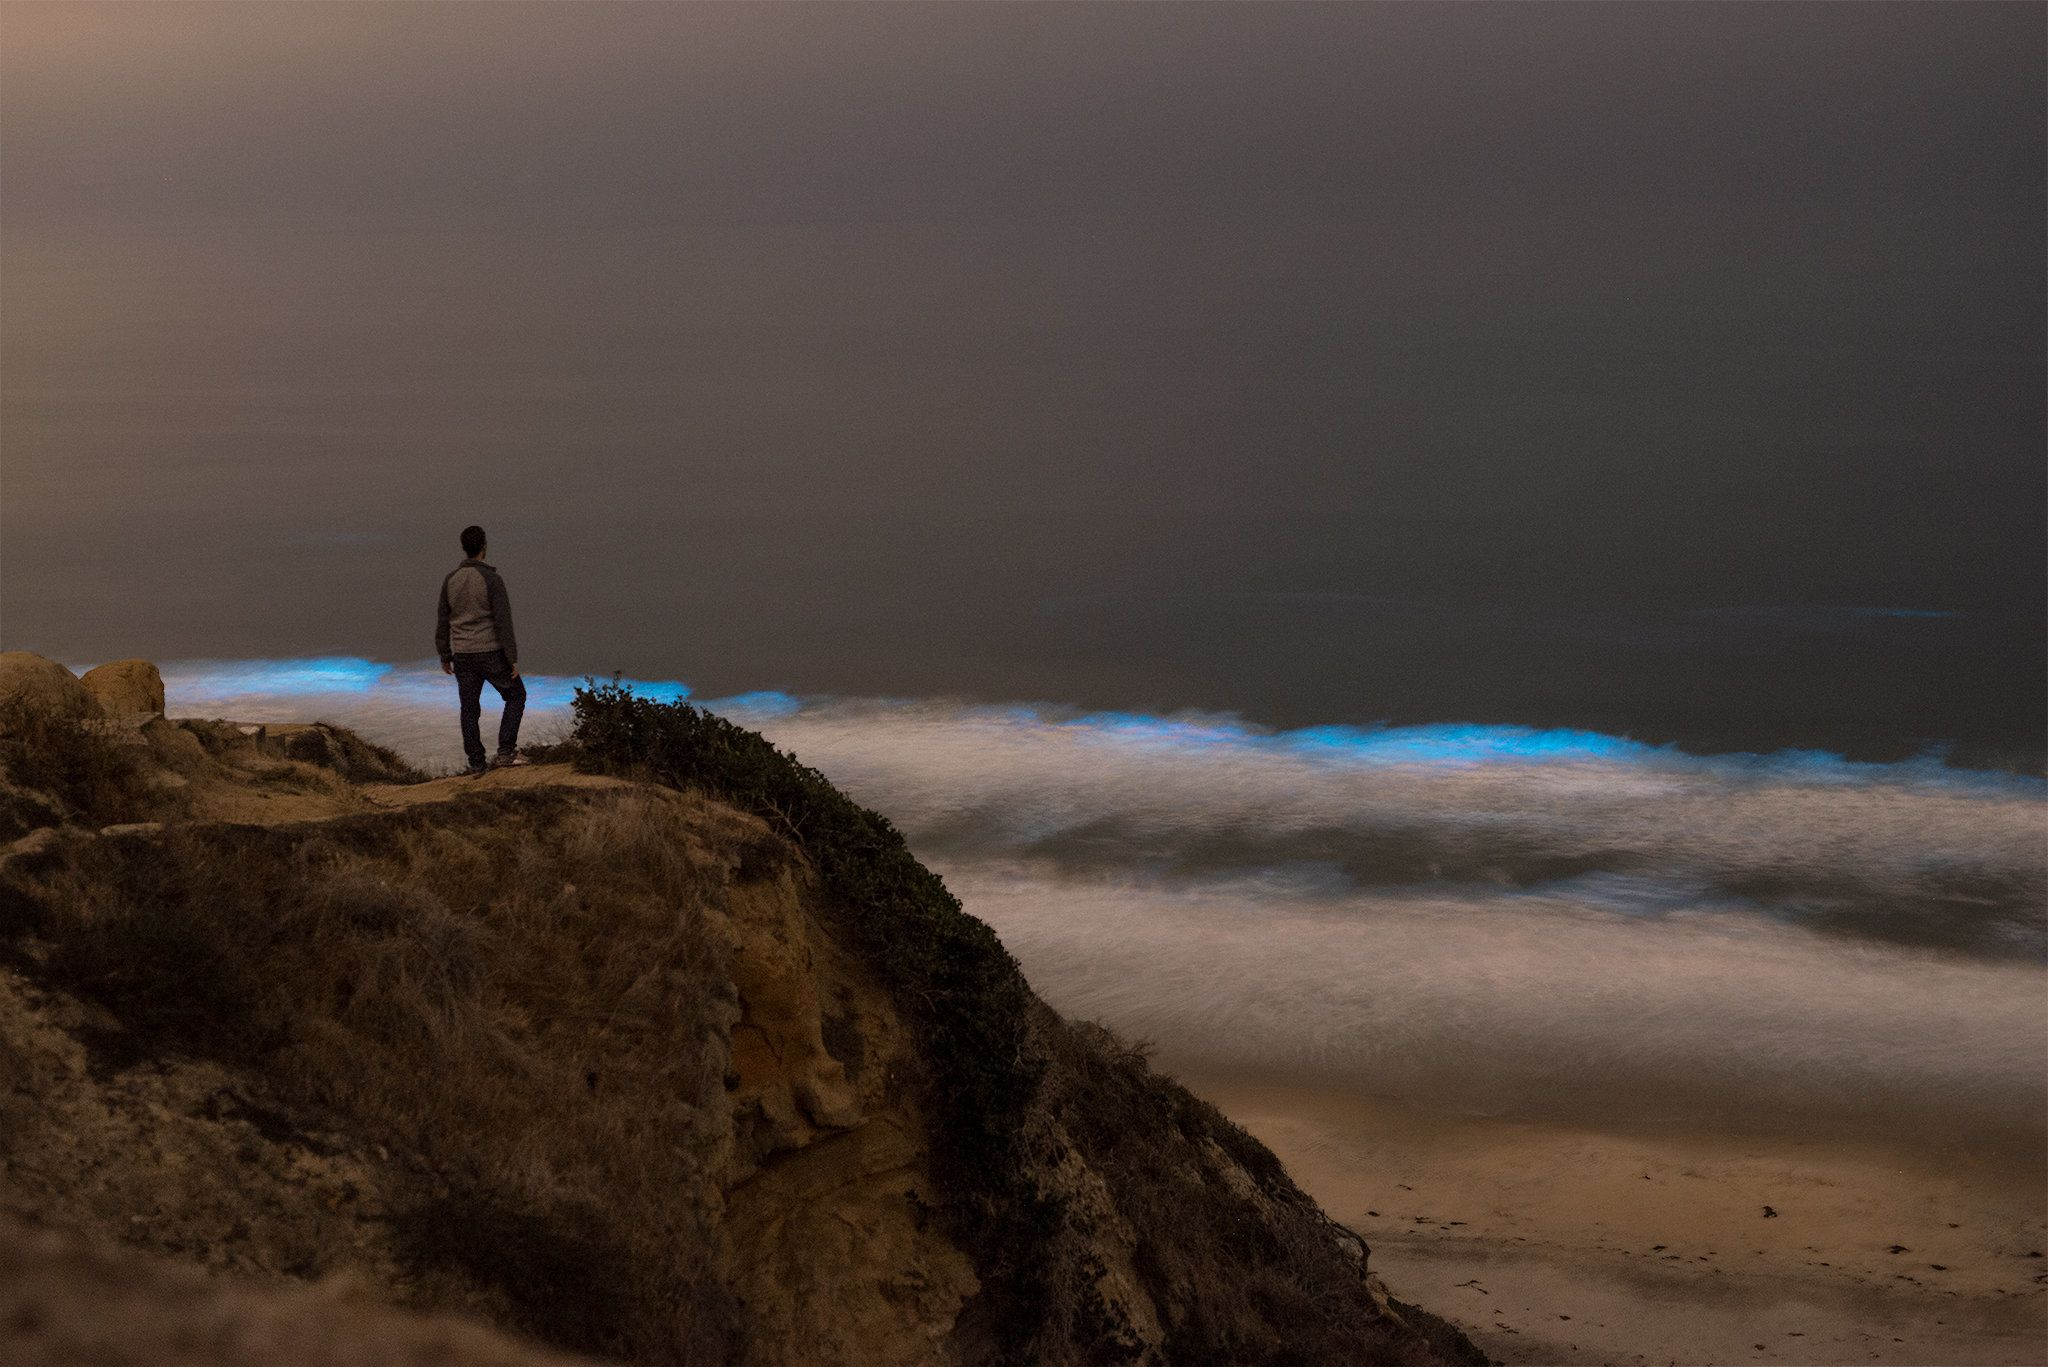 San Diego surf turns electric blue